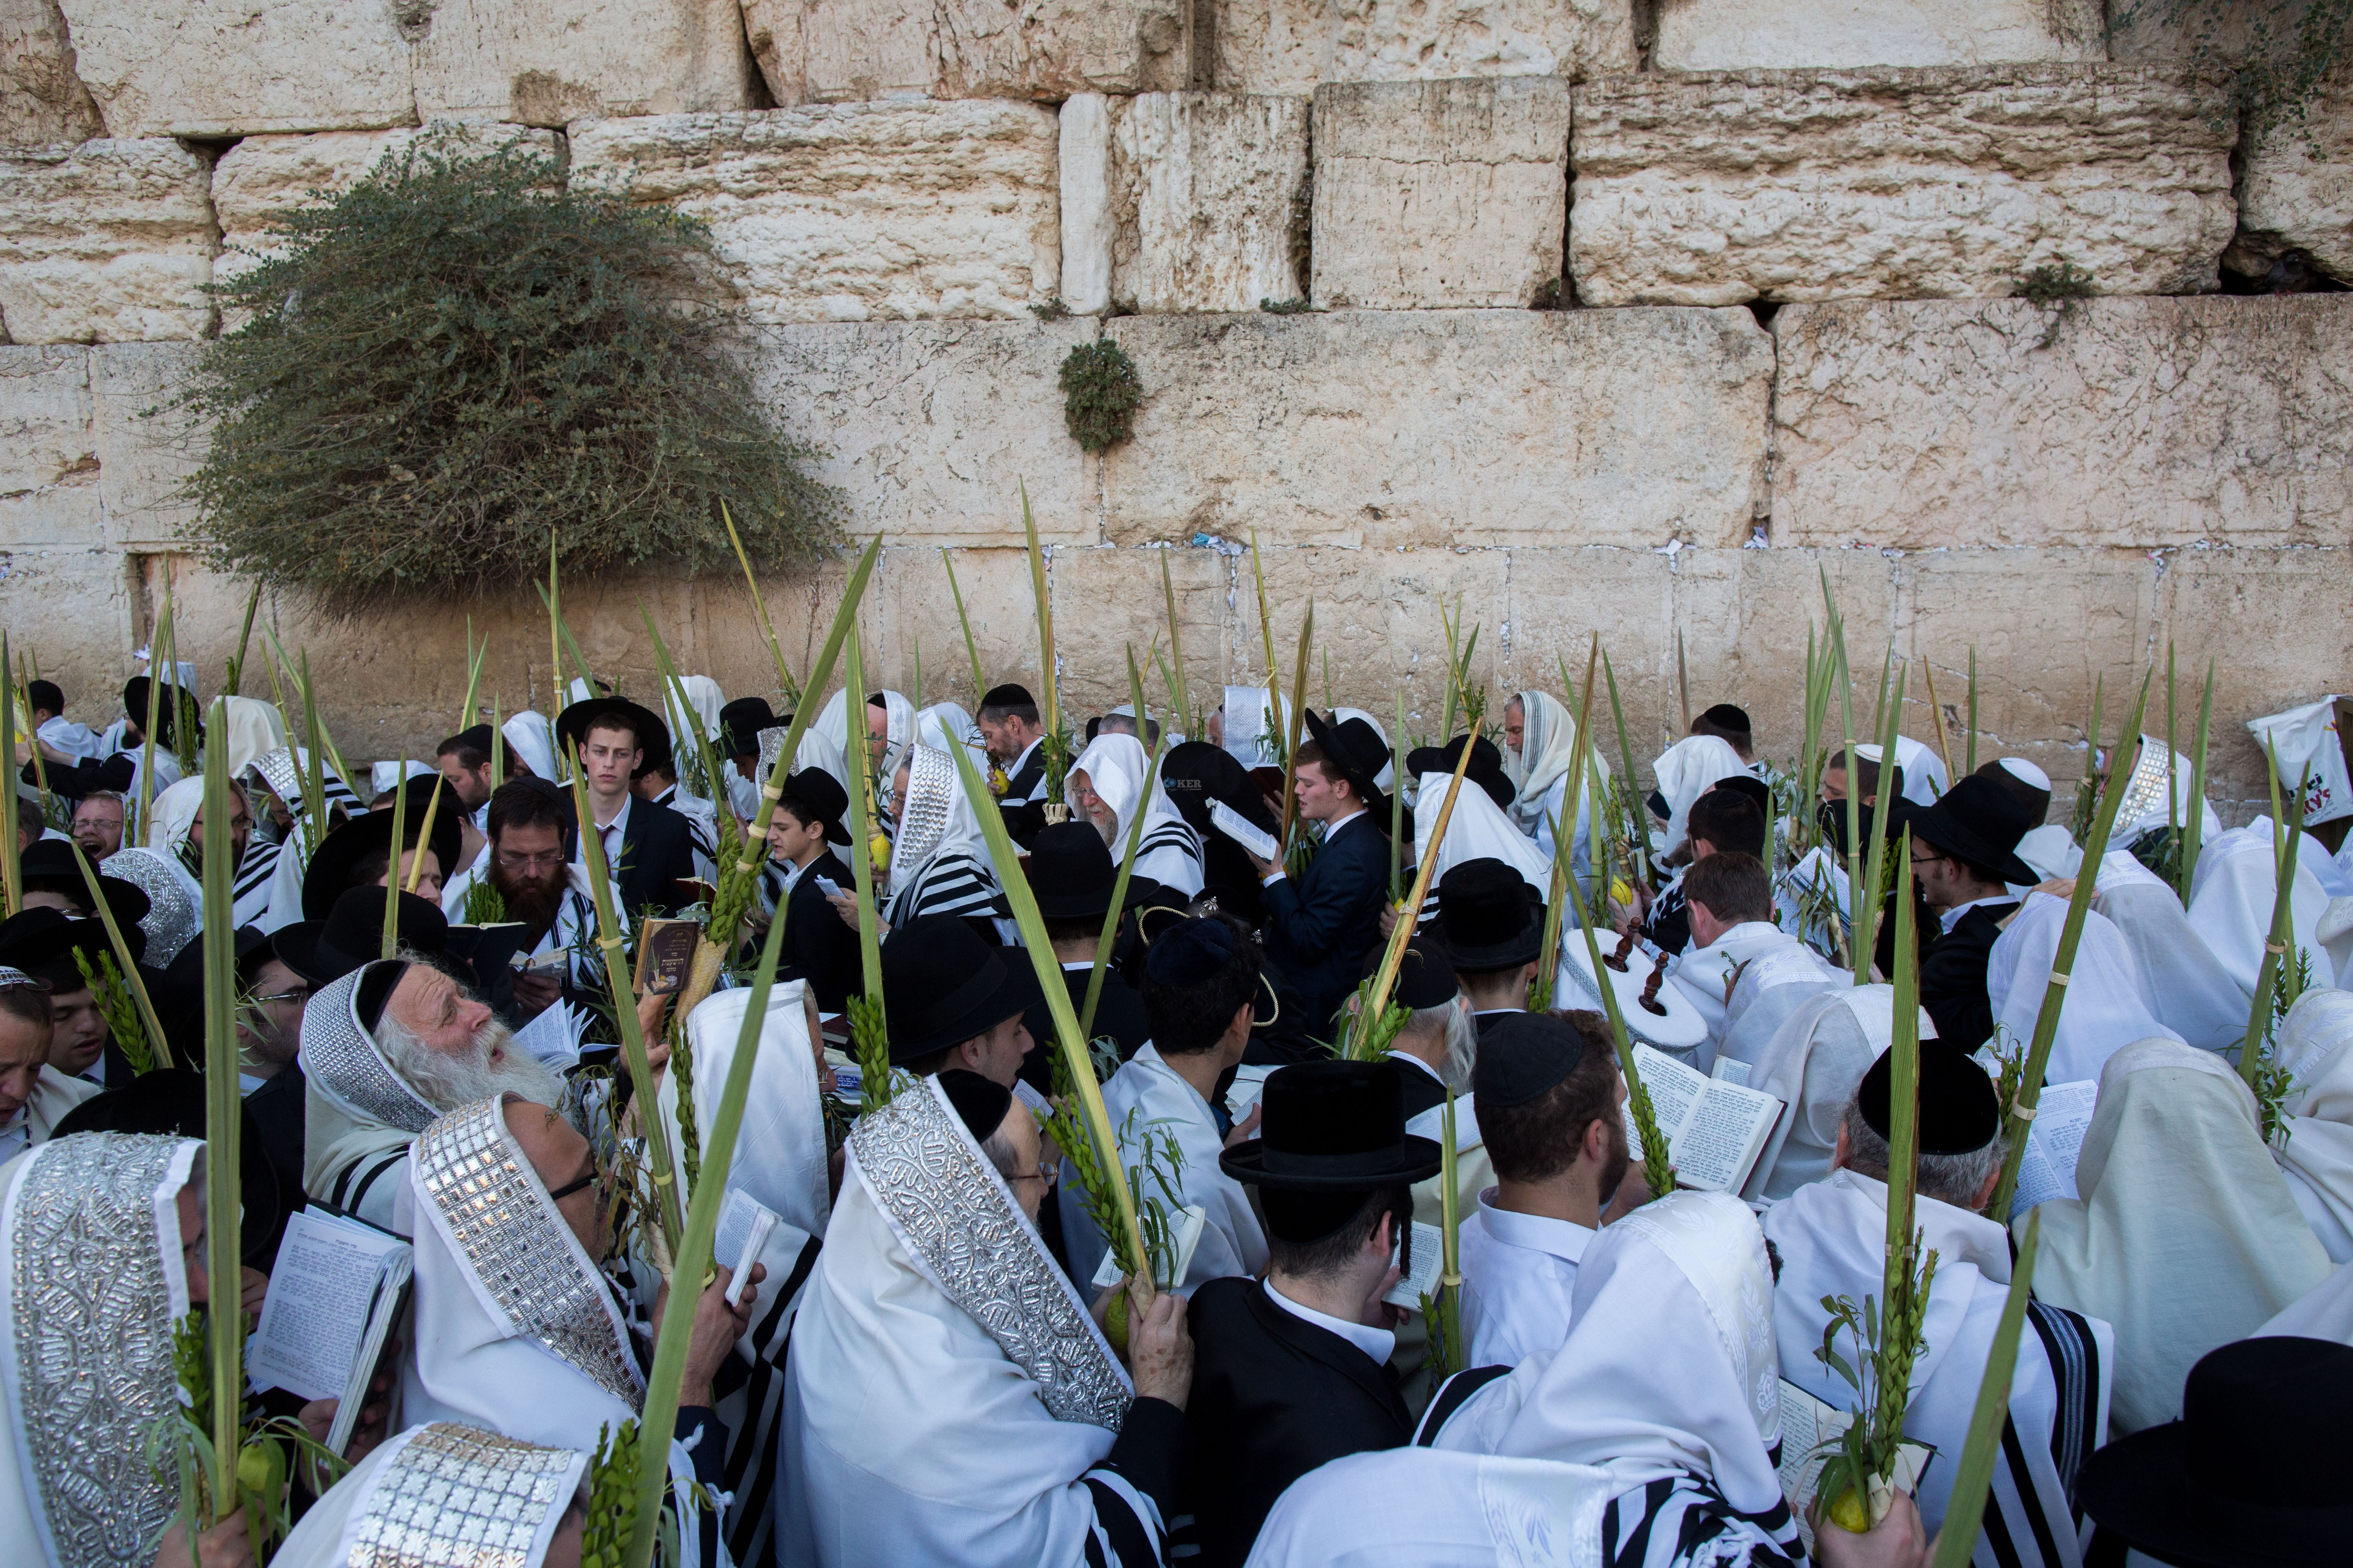 After shachris at the marina roscha chabad synagogue in moscow, russia, the congregants took bundles of five aravos and banged them on the ground five times, concluding the